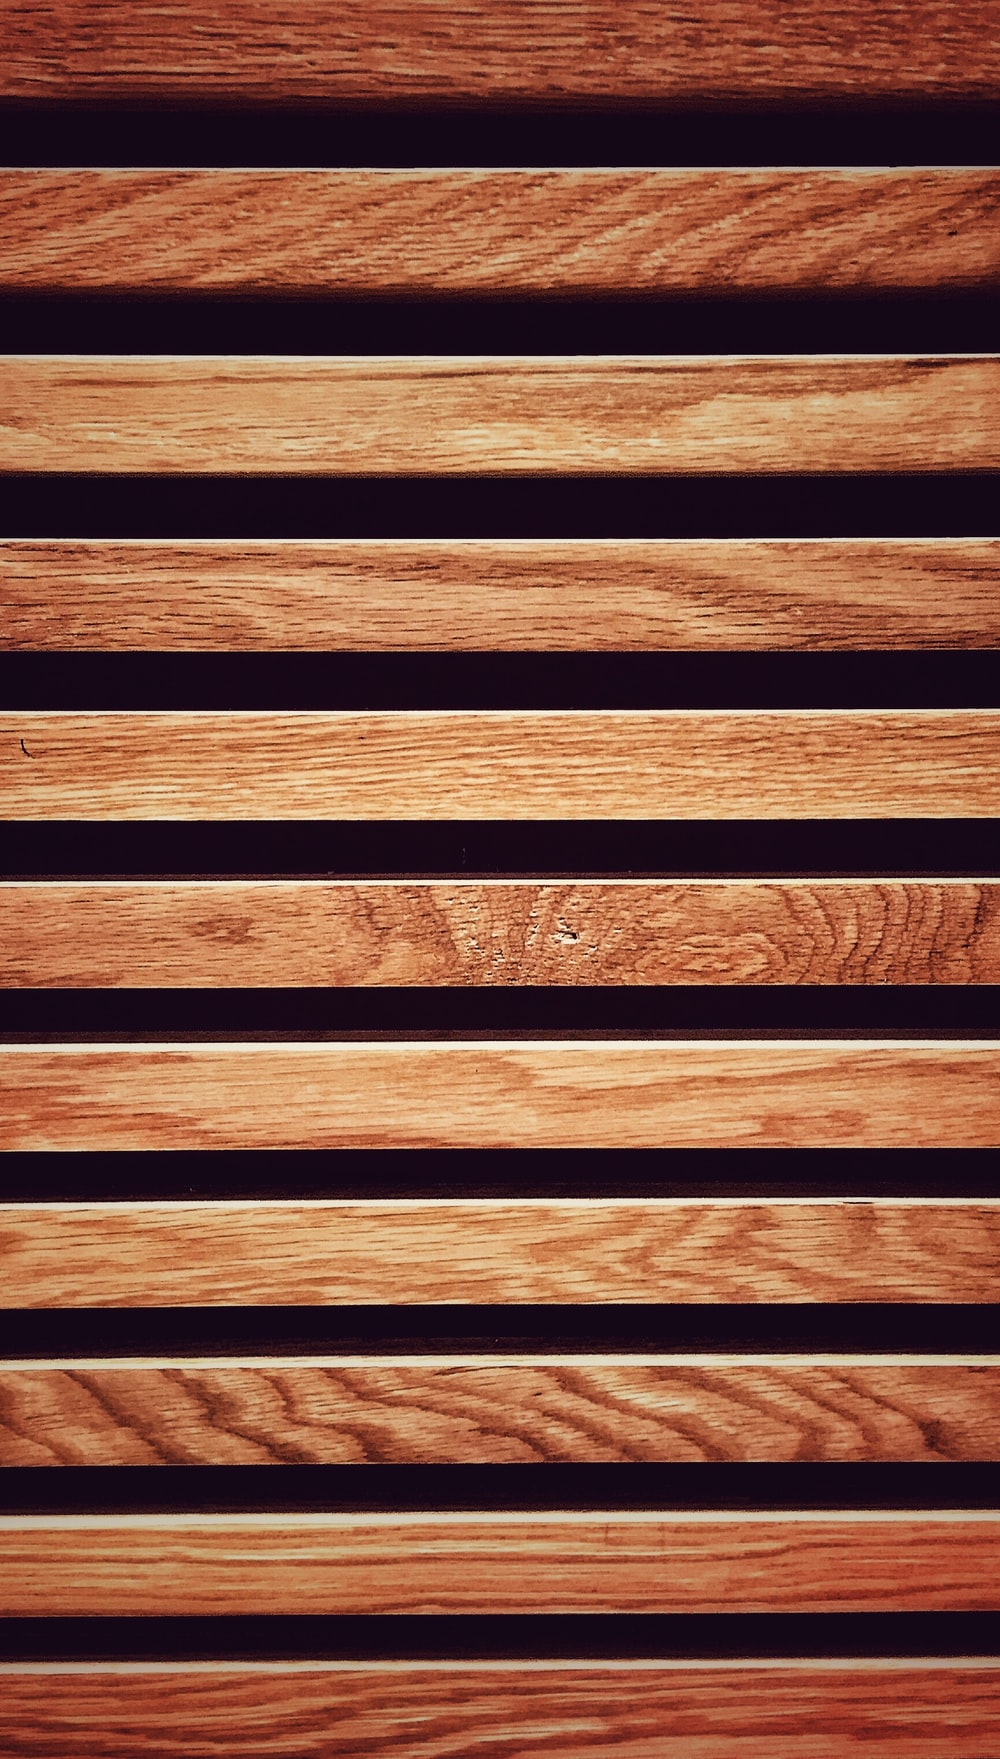 Wood Phone Wallpaper Pictures Download Free Images On Unsplash